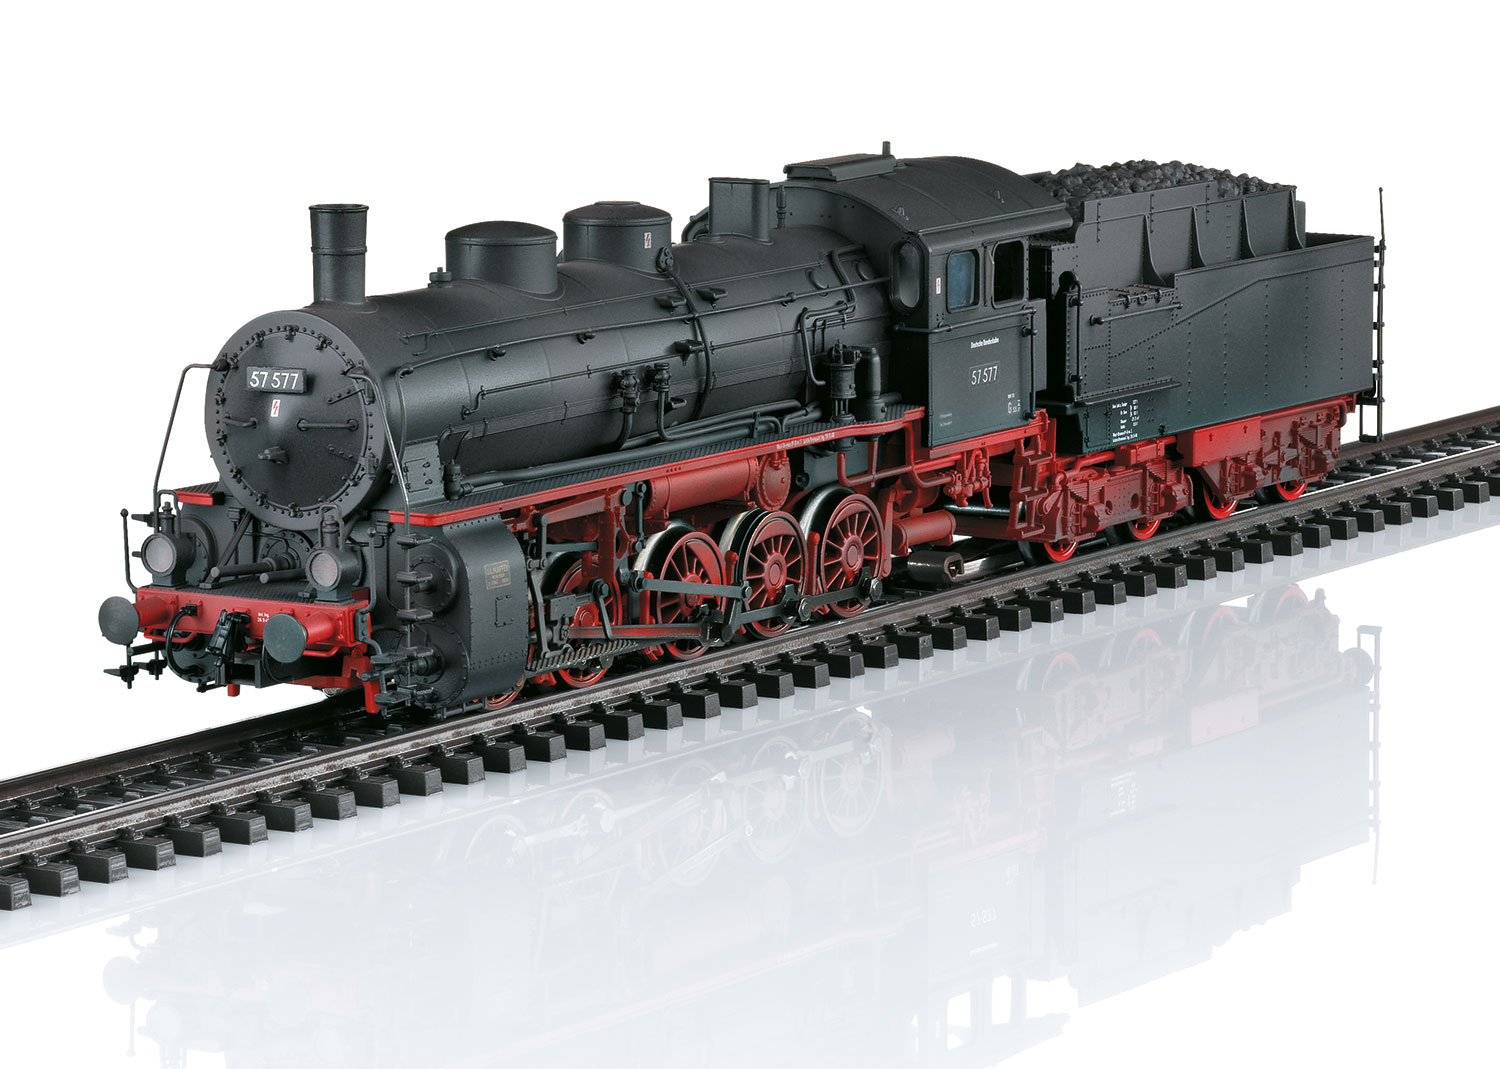 Class 57.5 Steam Freight Locomotive with a Tender